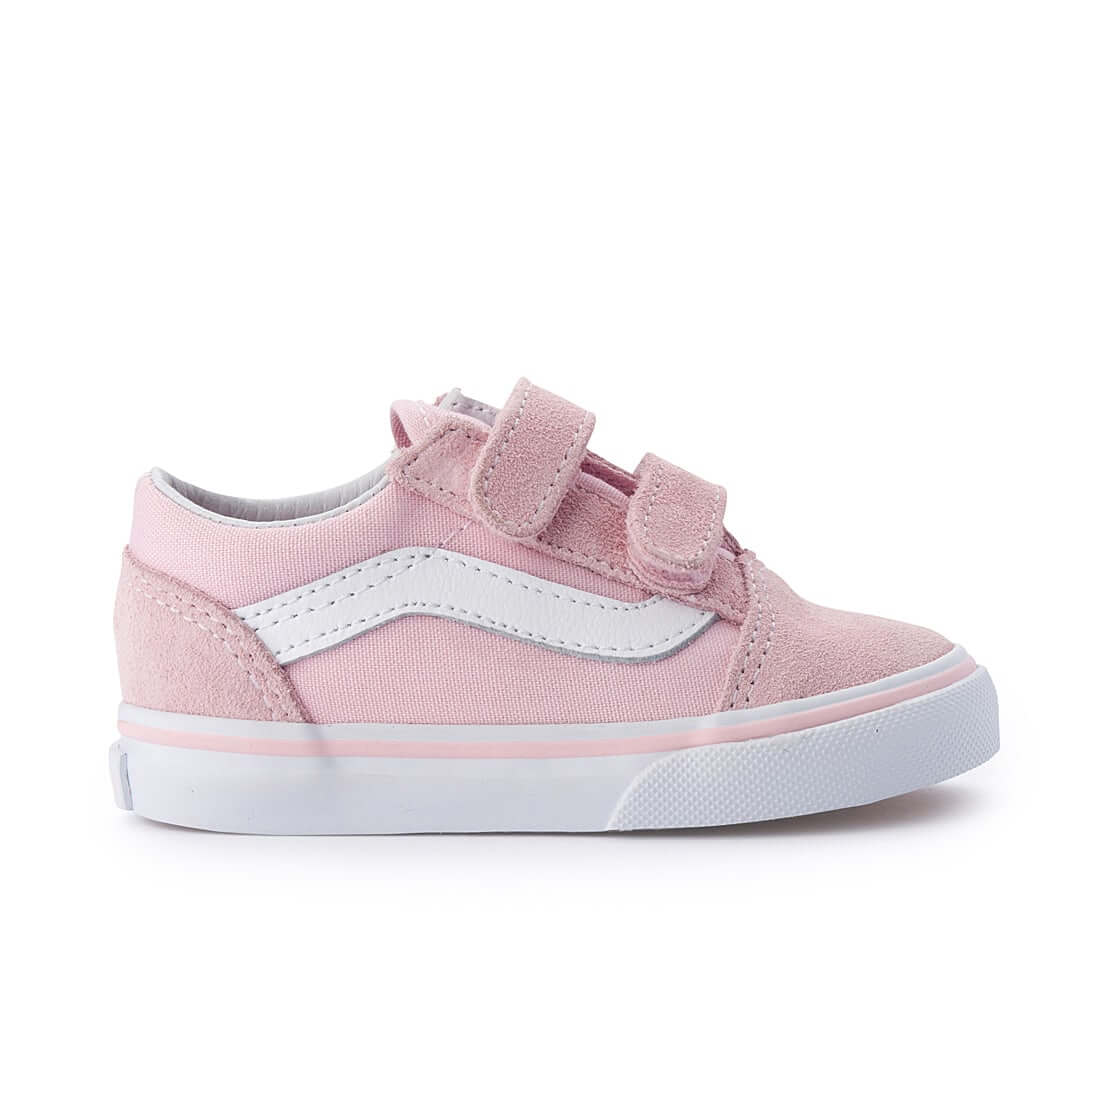 Vans Kids Old Skool V Sneaker – Pink side